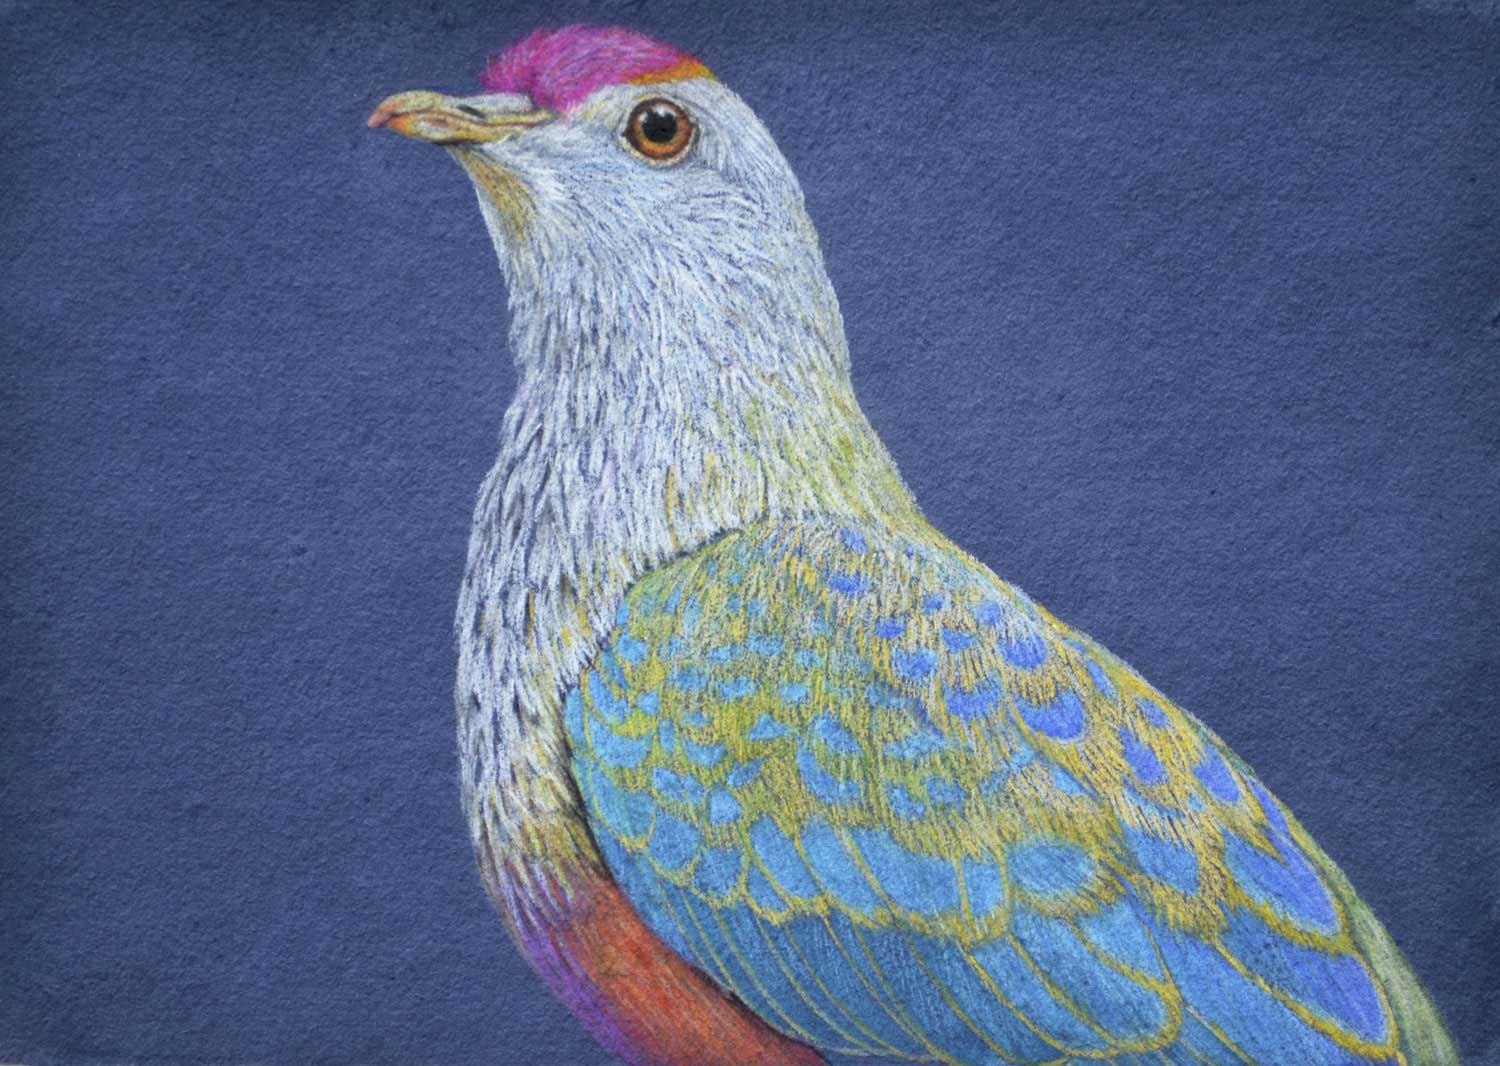 Rose crowned fruit dove  26 x 37, cm Pastel Drawing on handmade paper   Available as a limited edition print  $650